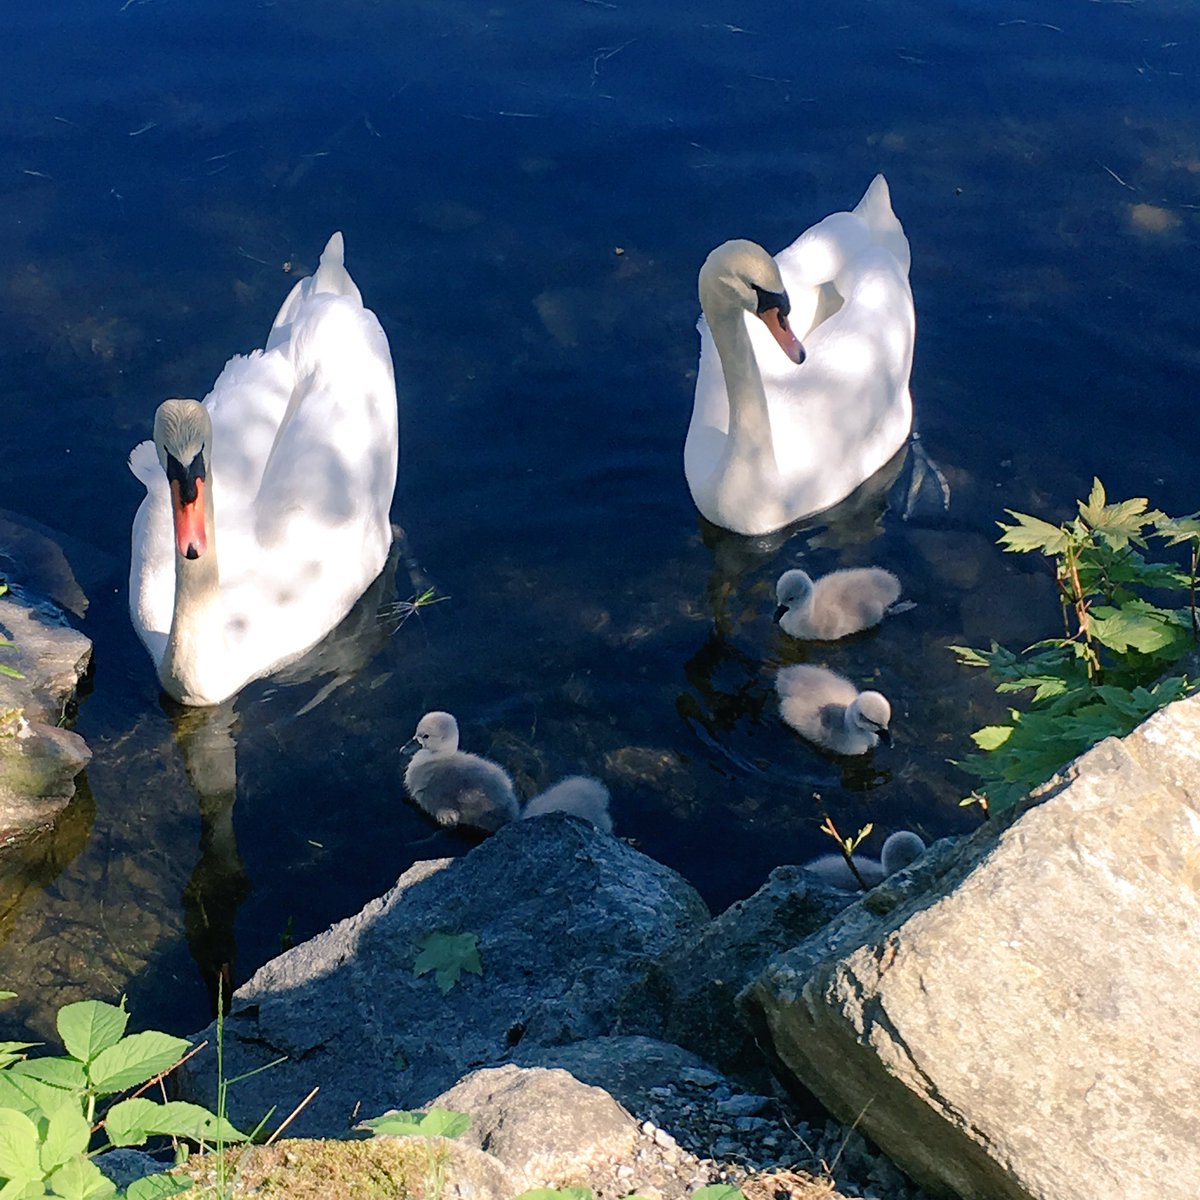 Surprise in the old mill park today, a pair of swans with six fluffballs 😍